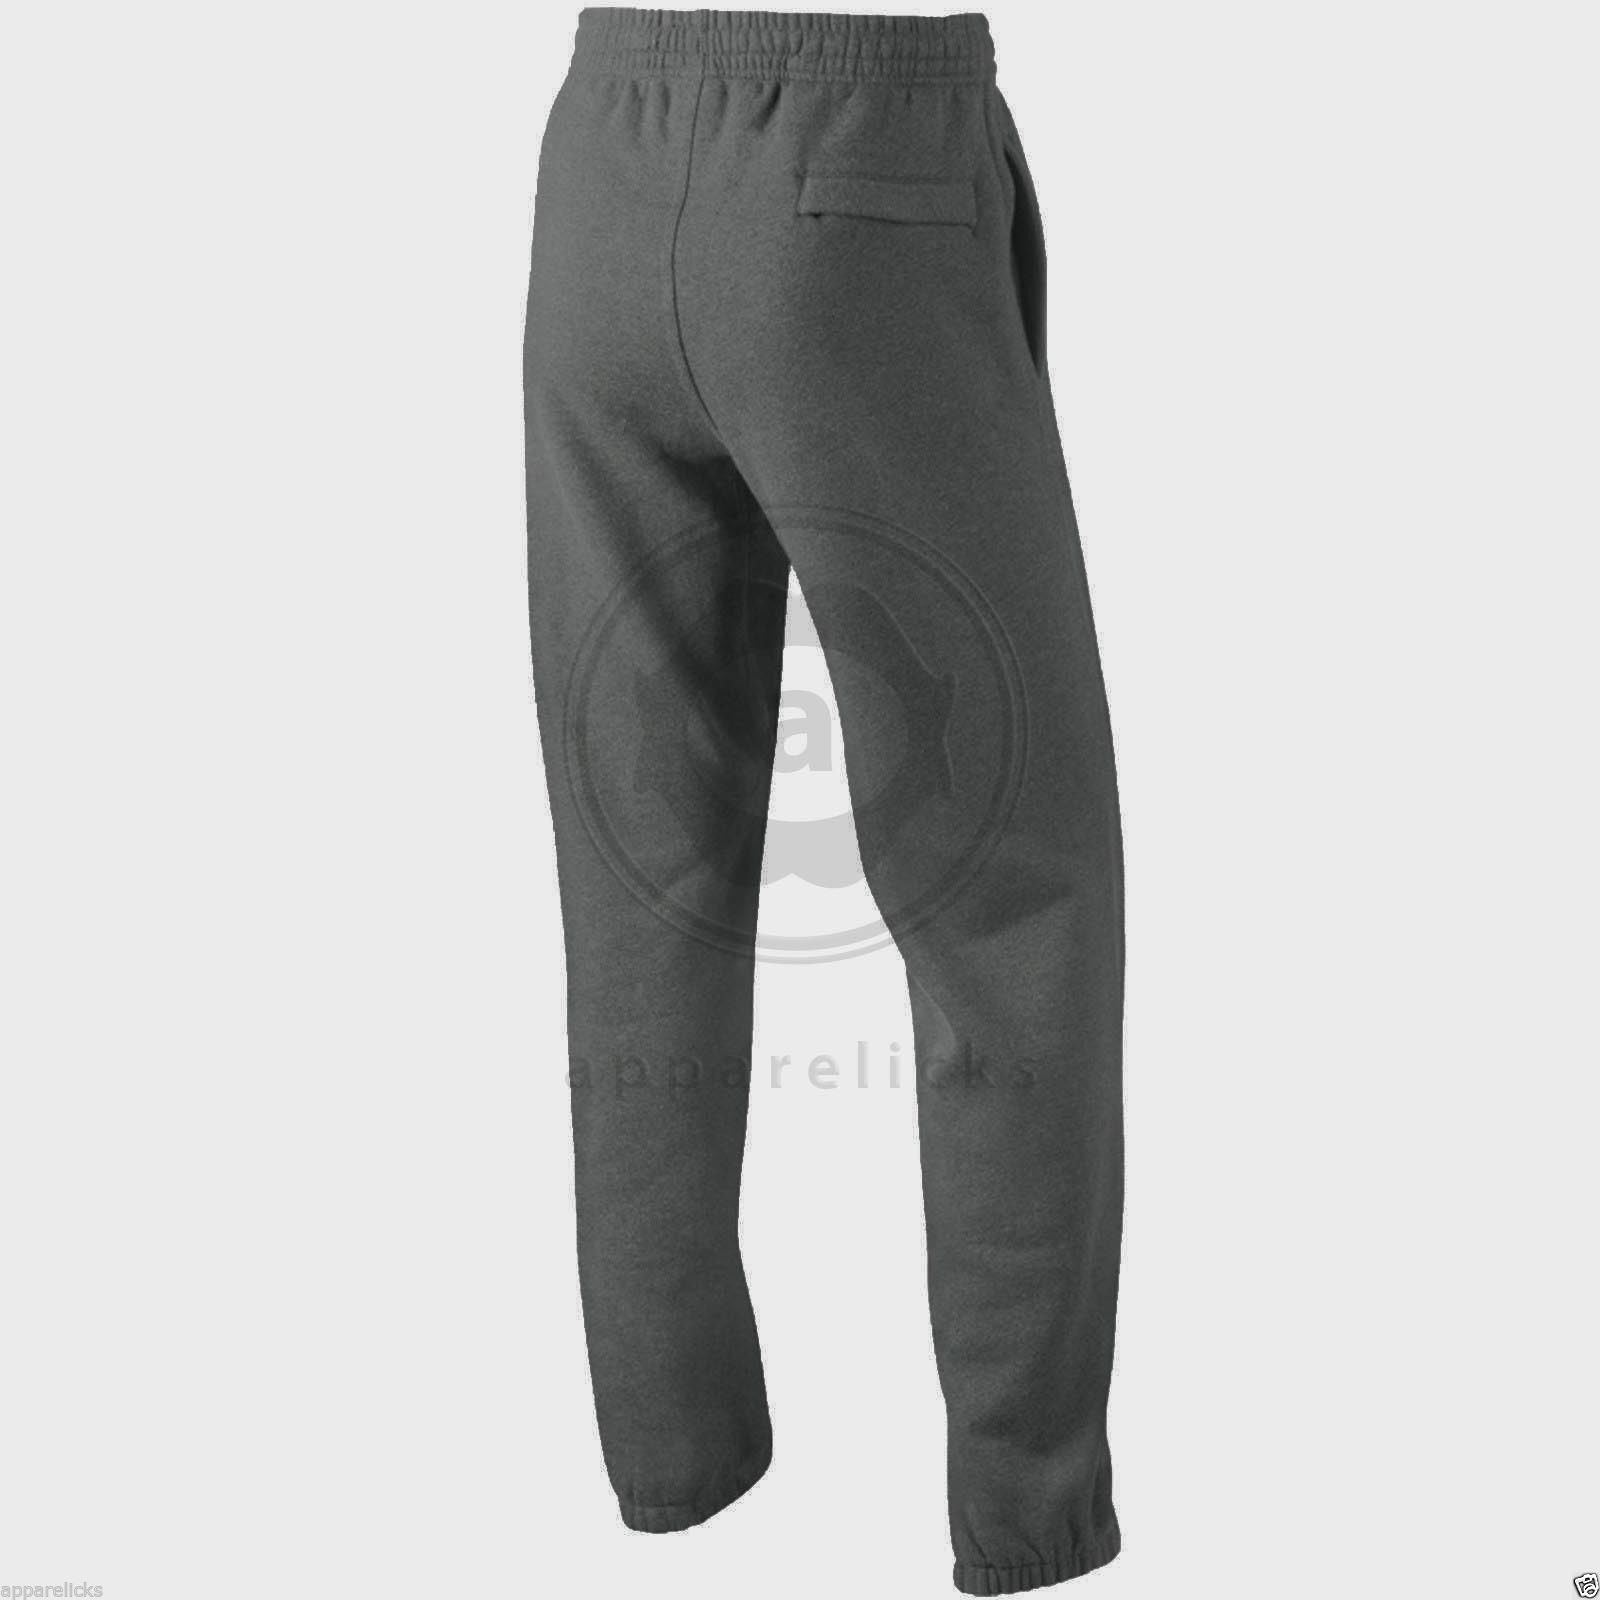 Mens / Mens Joggers; Refine Refine & Sort Mens Joggers. products. Related categories. Mens Outdoor Footwear; Mens Down Jackets; Mens Hats and Gloves; Mens Hi Tops; Slazenger Cuffed Fleece Jogging Pants Mens. $ Sizes: S, M, L, XL, 2XL. Slazenger Cuffed Fleece Jogging Pants Mens. $ Sizes: S Slazenger.